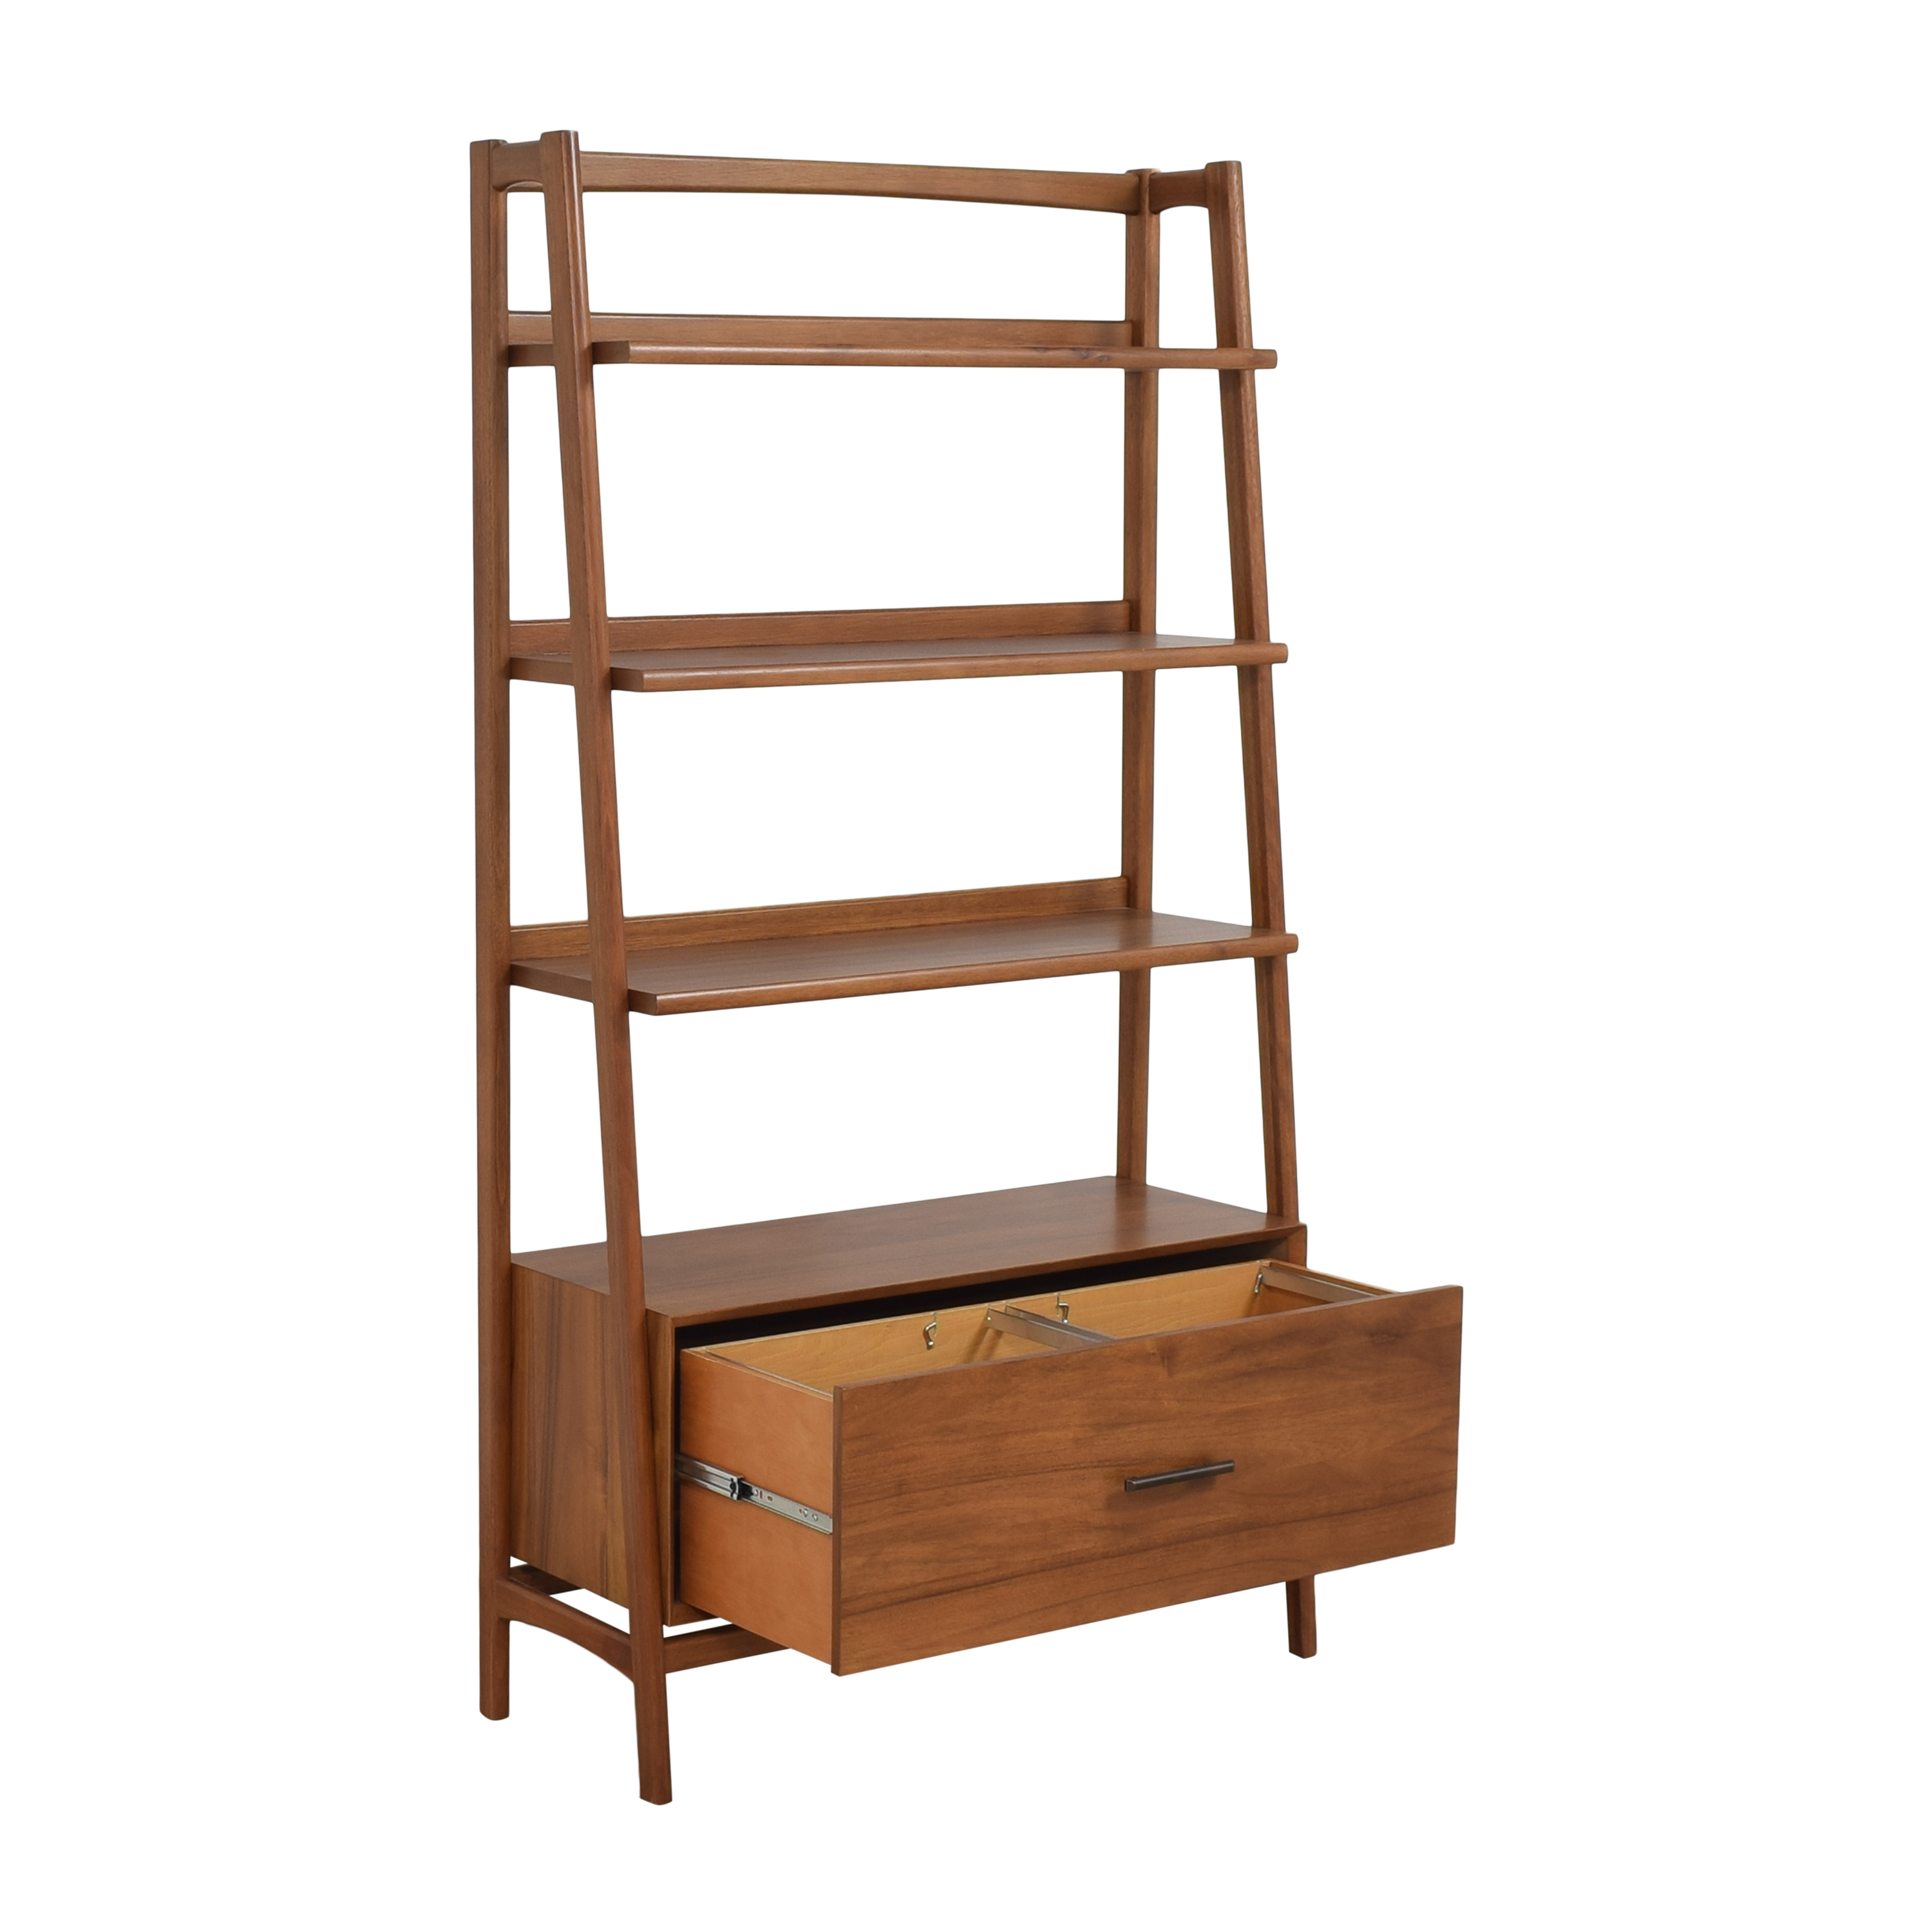 West Elm Mid-Century Bookshelf with Drawer / Bookcases & Shelving